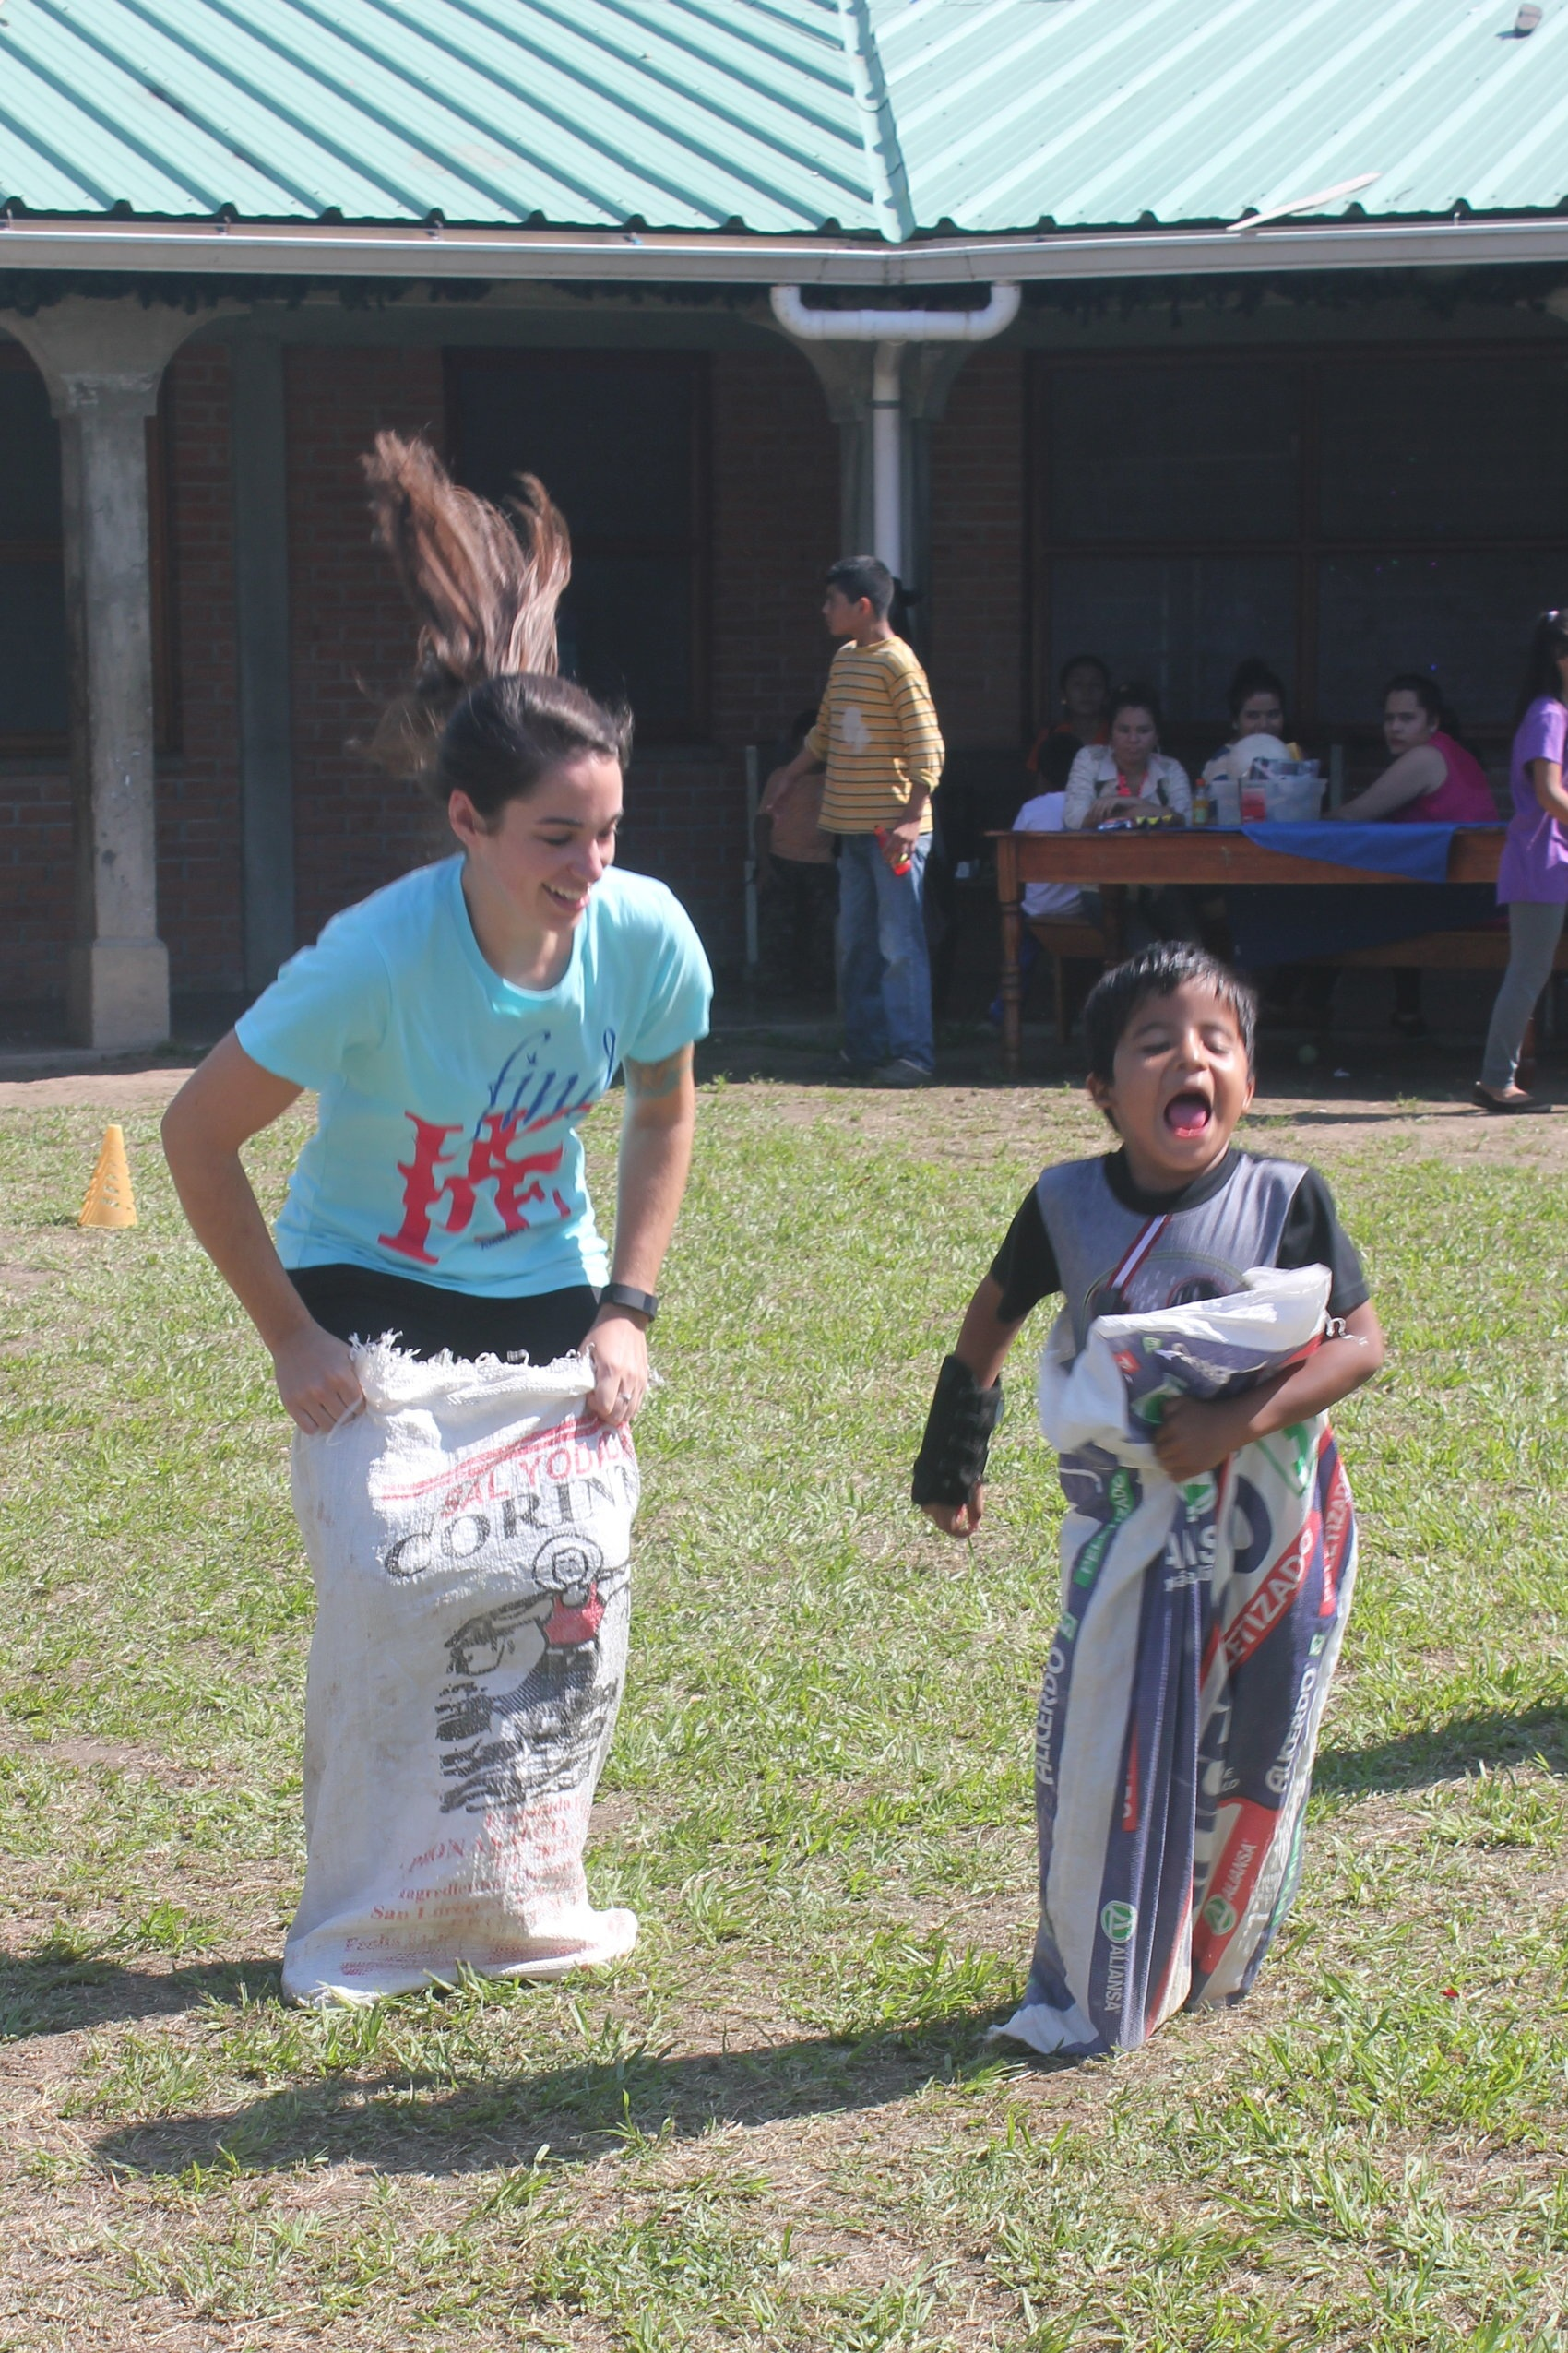 Giving it his all in the gunny sack race.